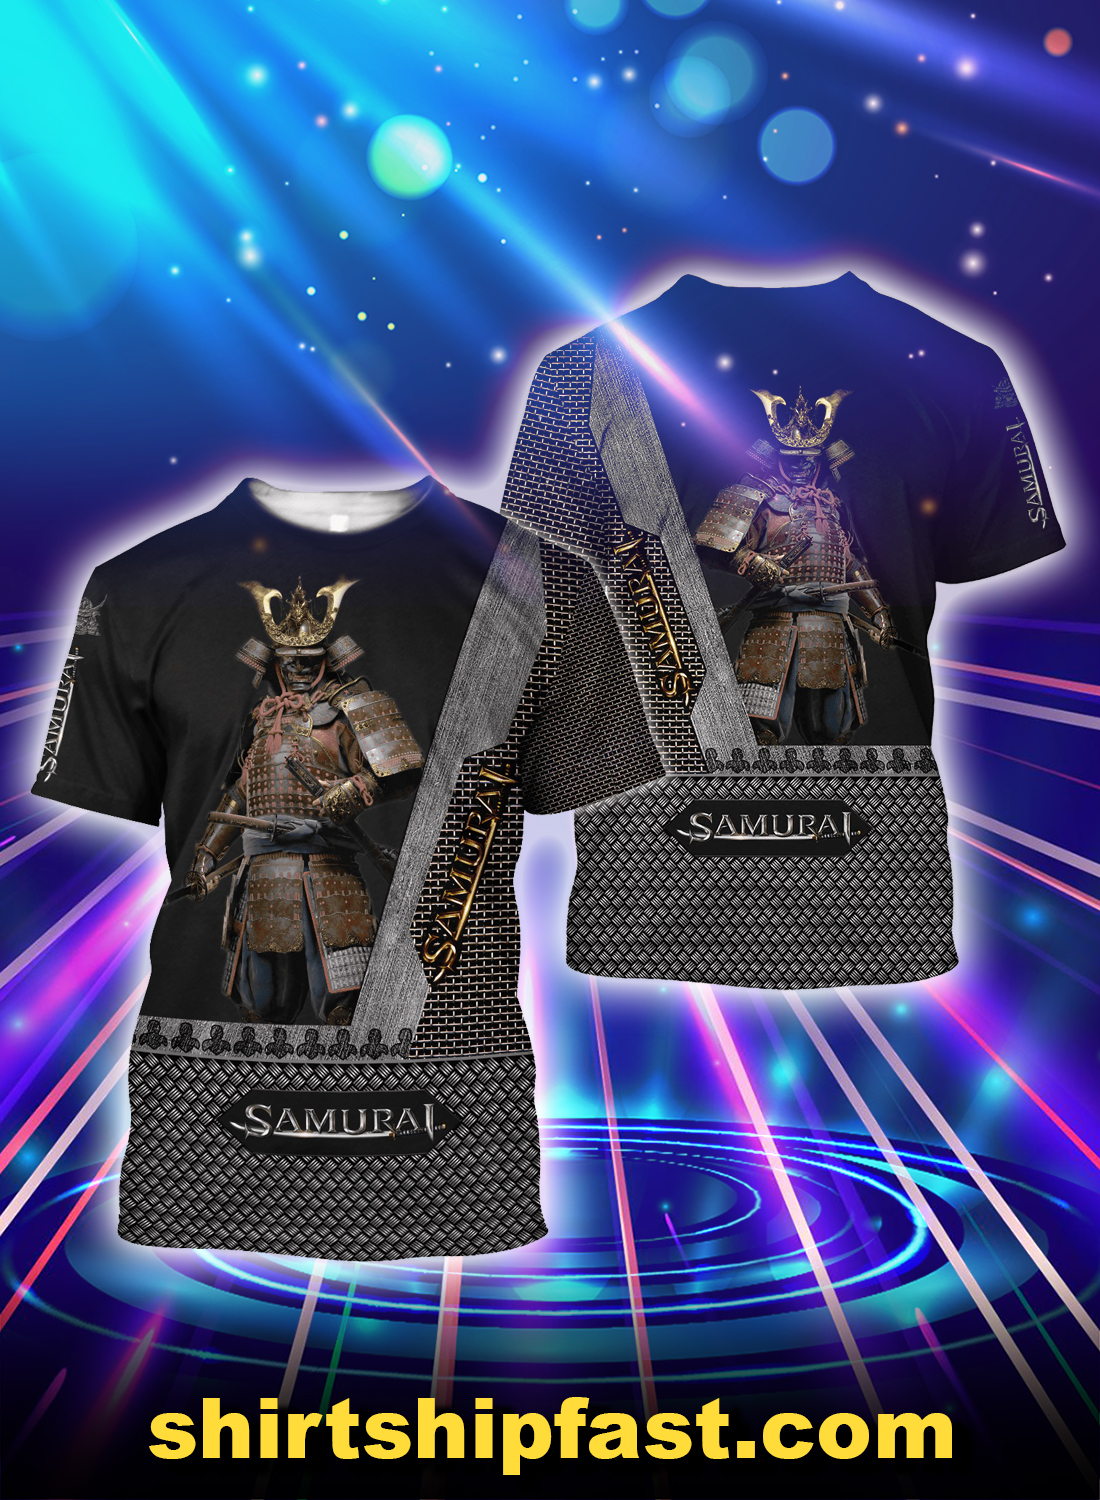 Samurai all over printed t-shirt